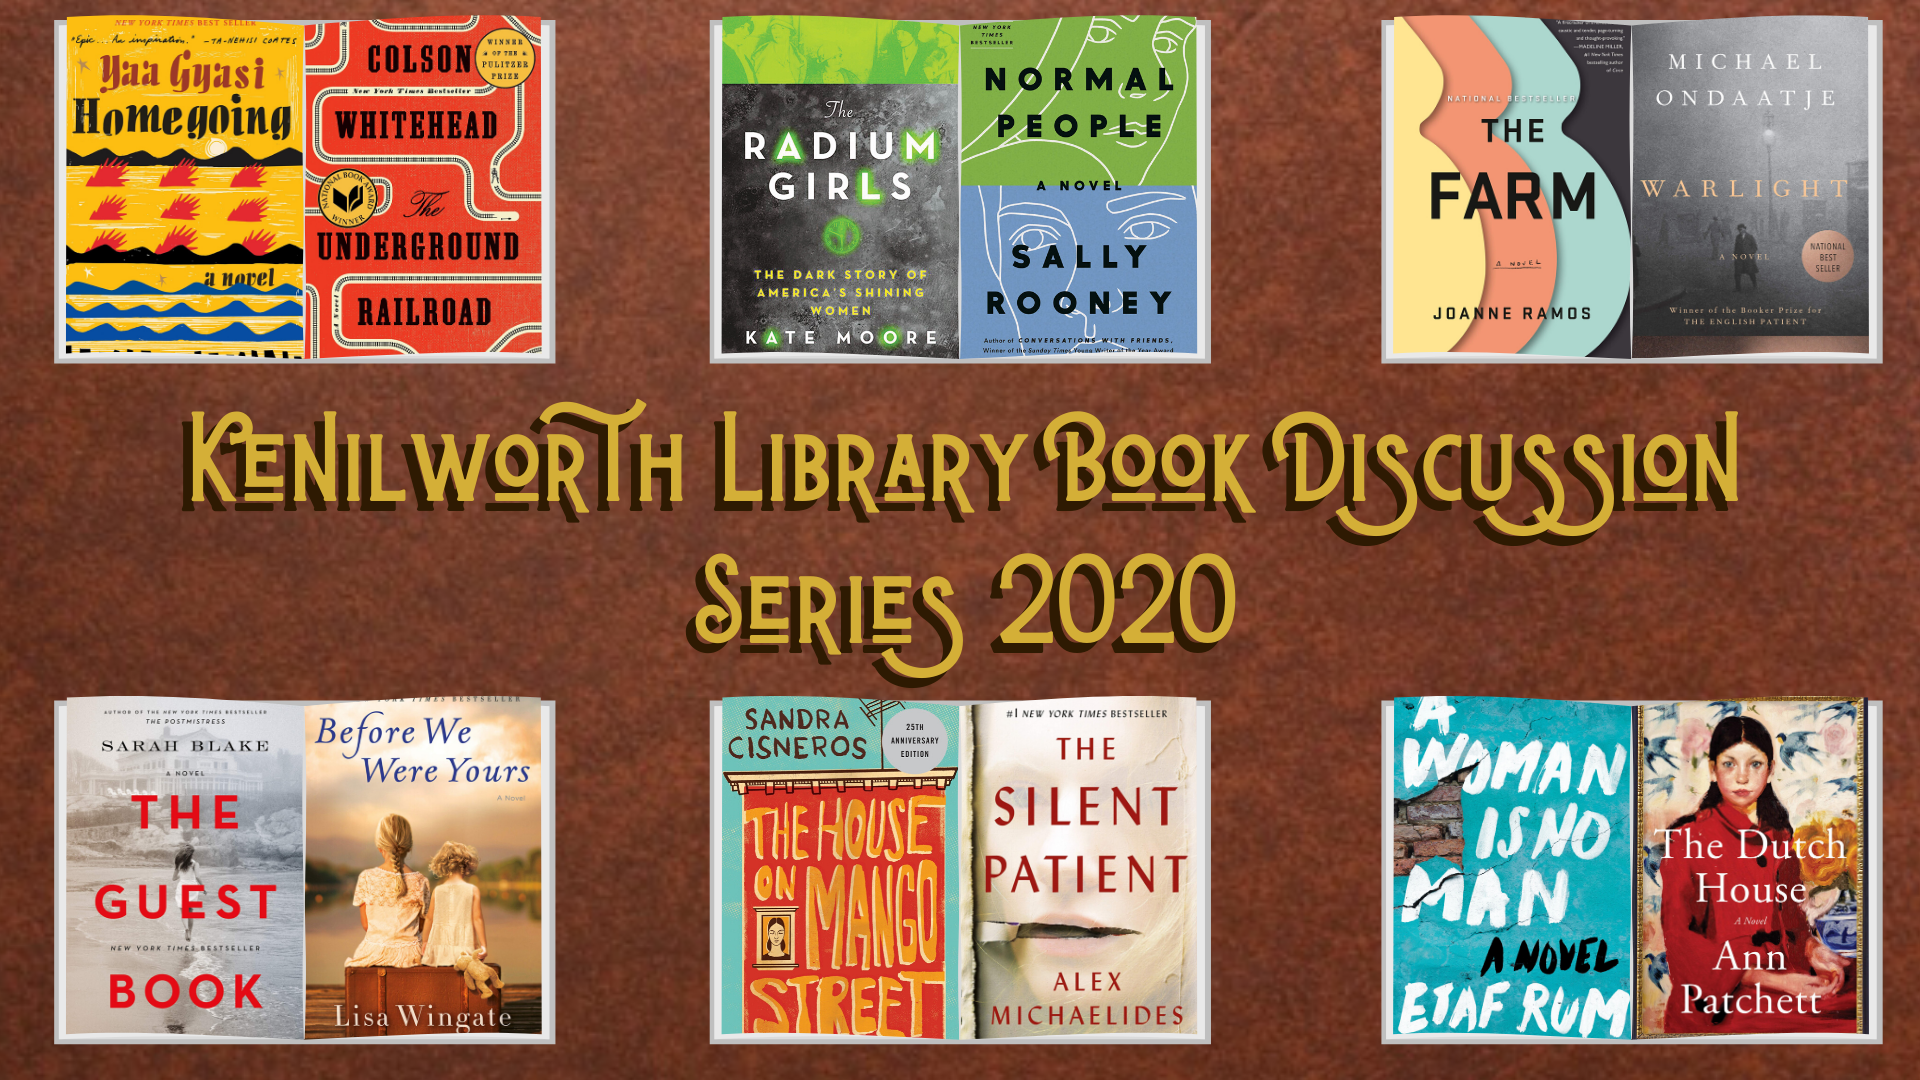 Kenilworth Library Book Discussion Series 2020